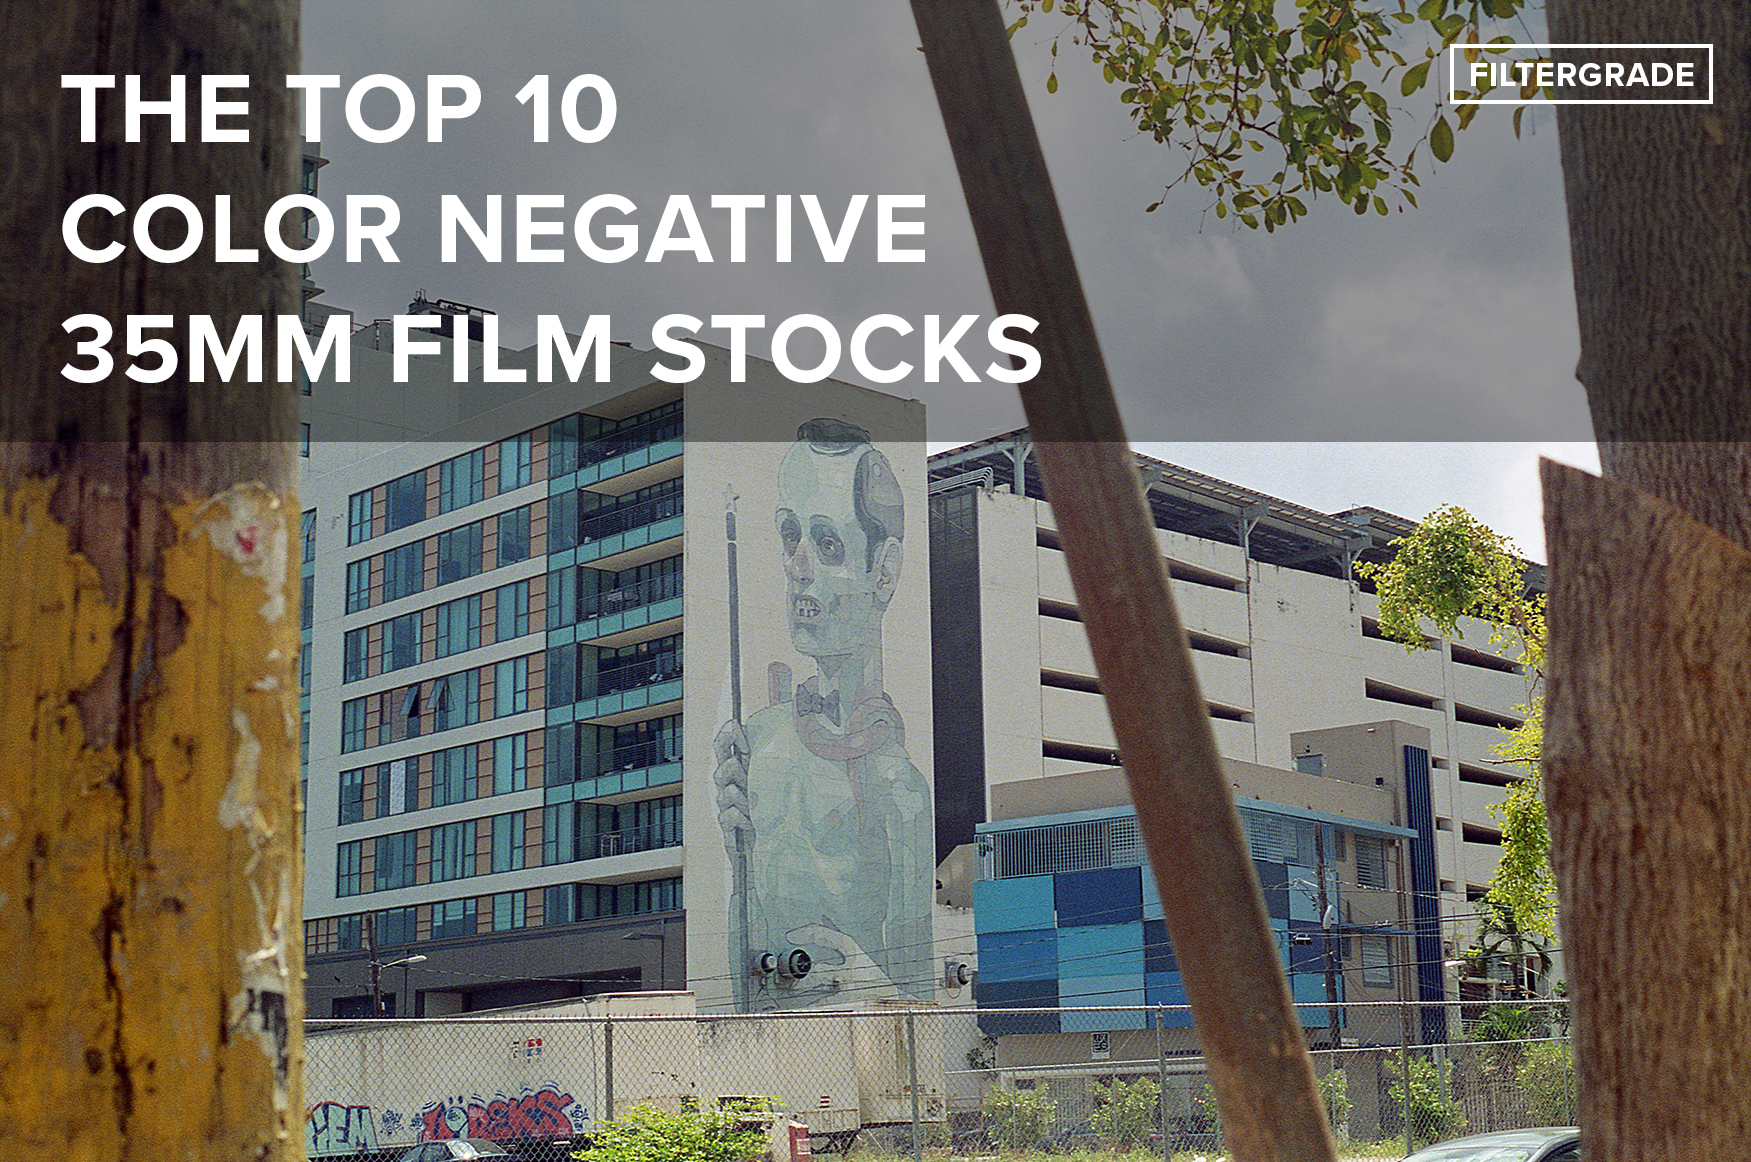 (FINAL) The Top 10 Color Negative 35mm Film Stocks - FilterGrade